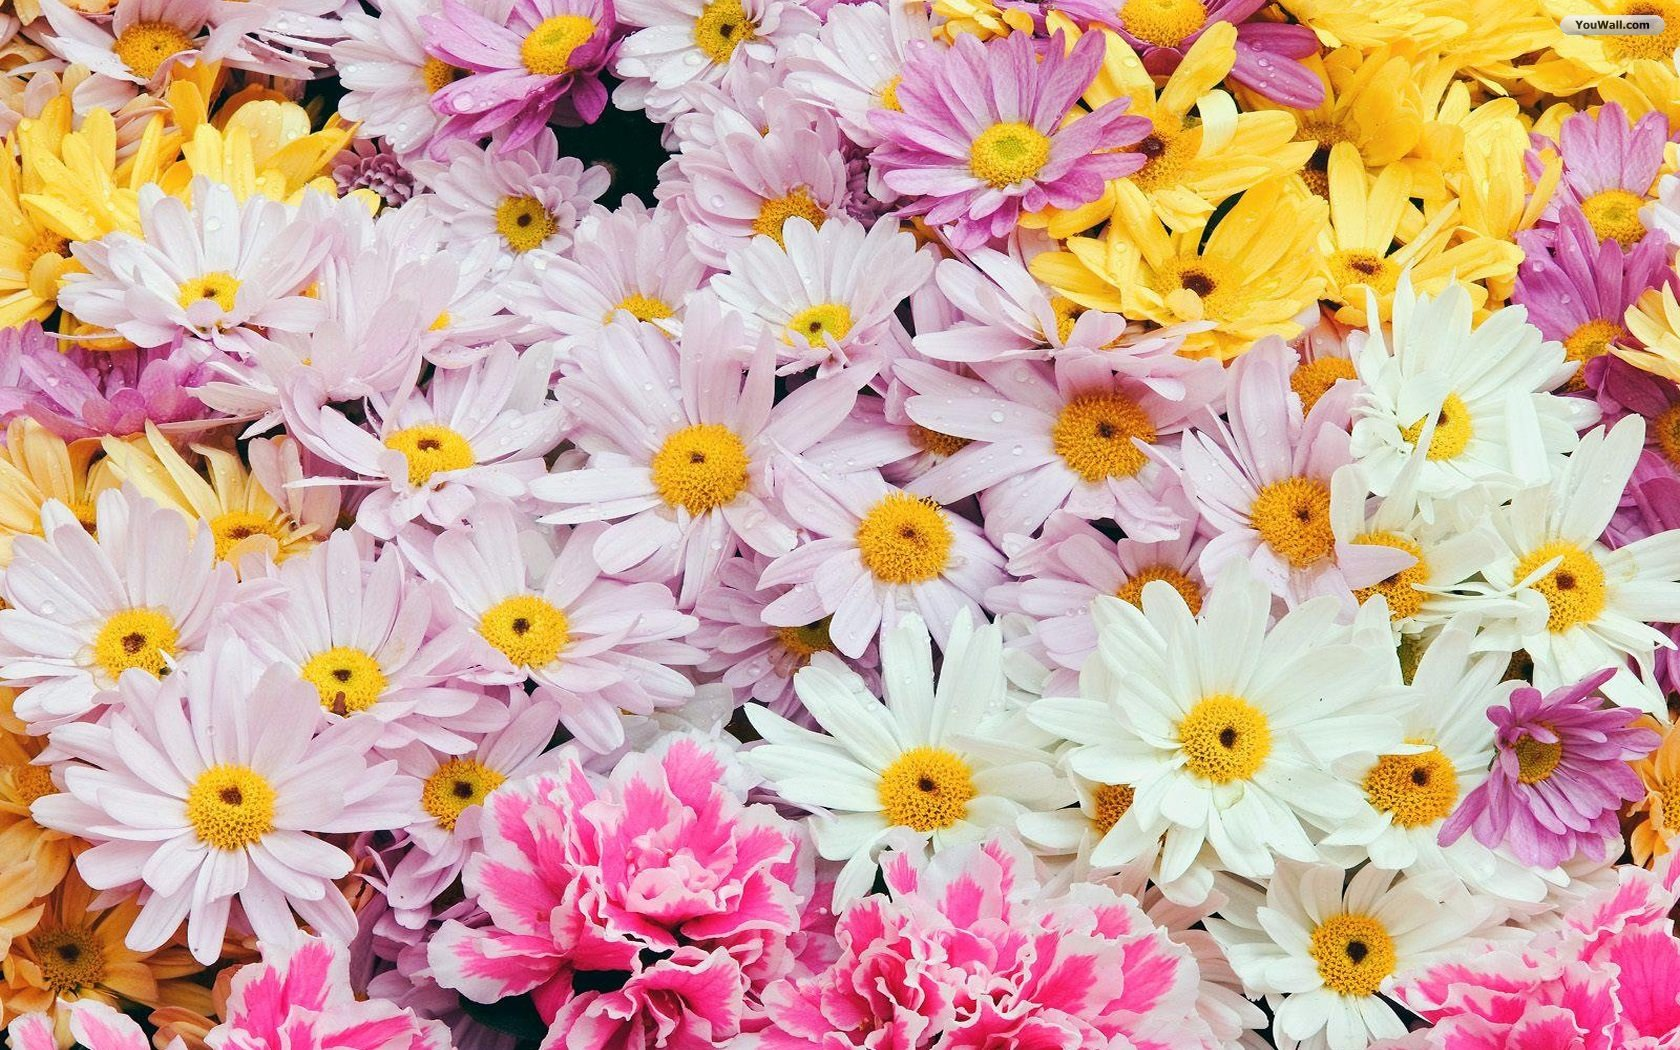 Wallpaper flowers free png download Wallpapers Flowers Free (76+) png download